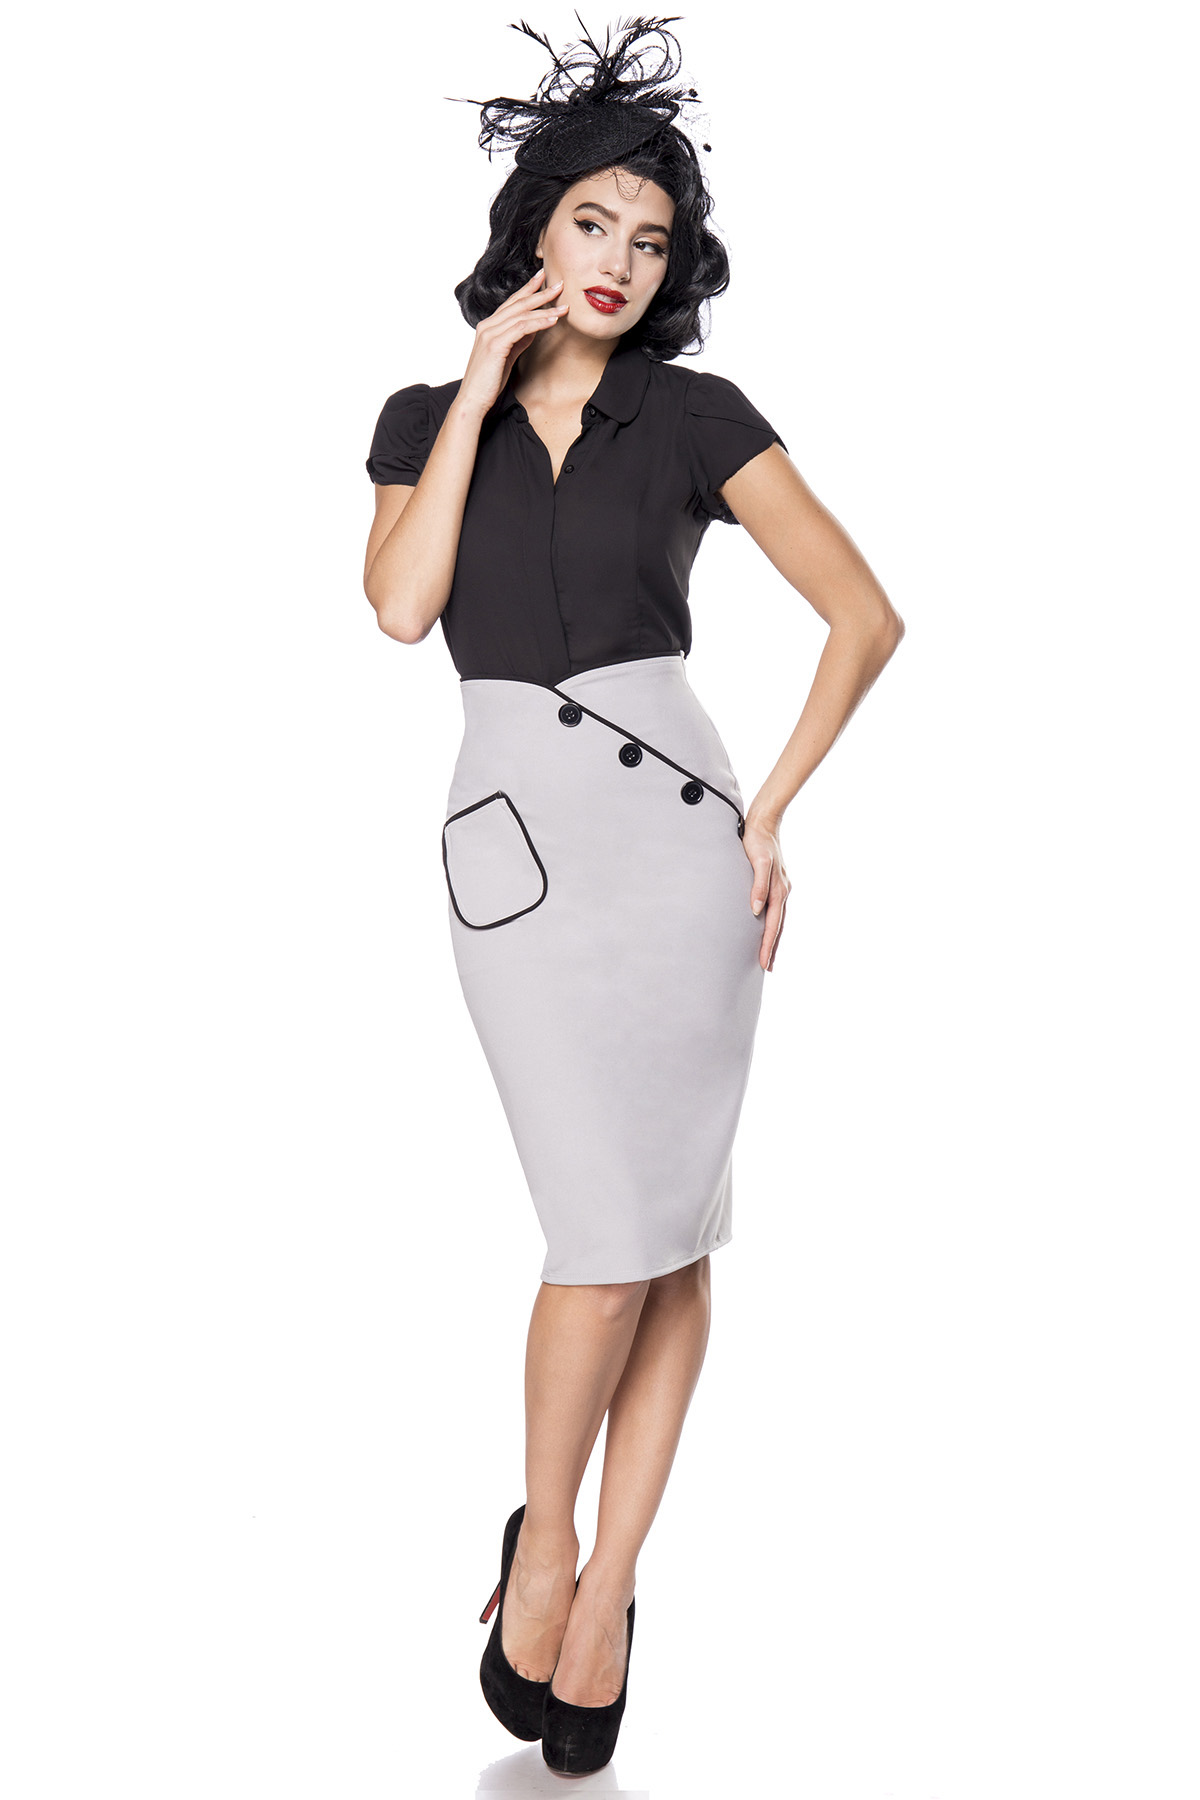 93833b23a3511 Vintage pencil skirt with waistband, vintage skirts, retro skirts